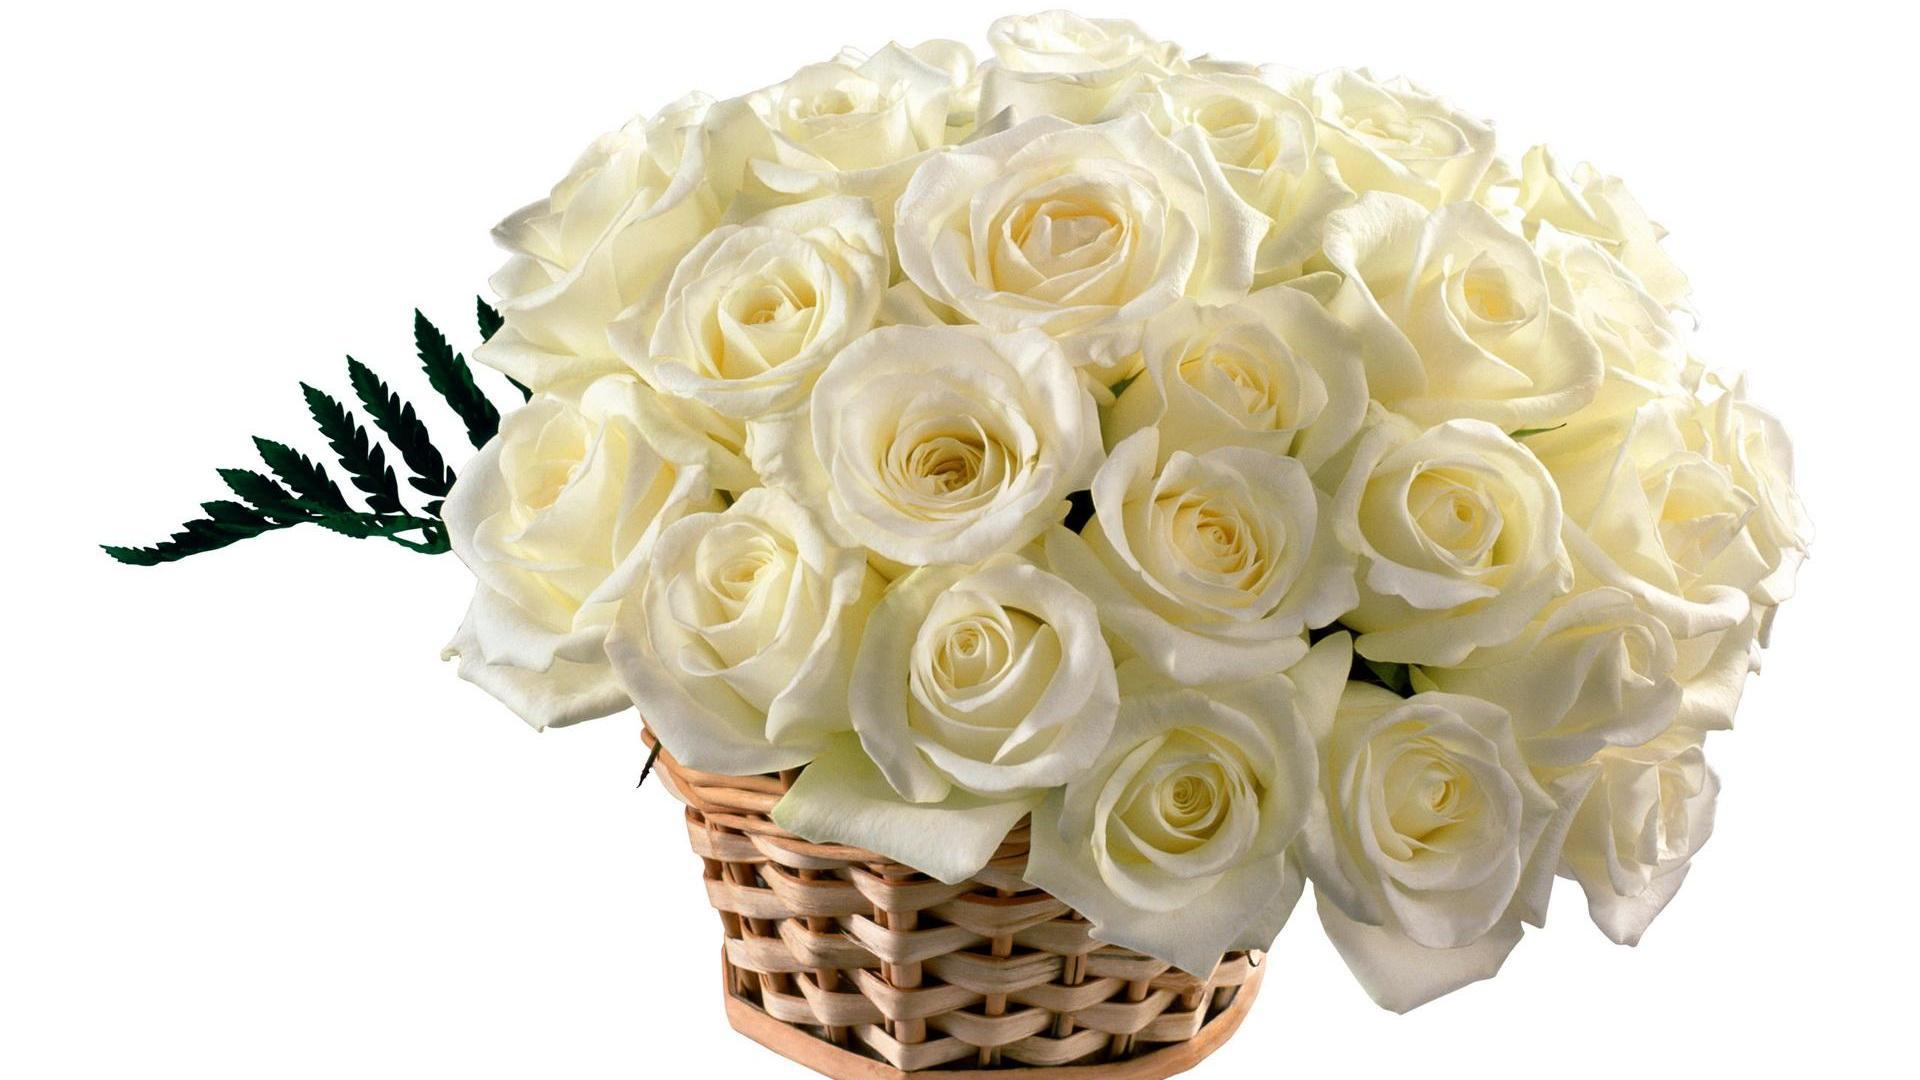 Wallpapers Free Download Hd 3d White Roses Best Hd Free Wallpapers Hd Wallpaper